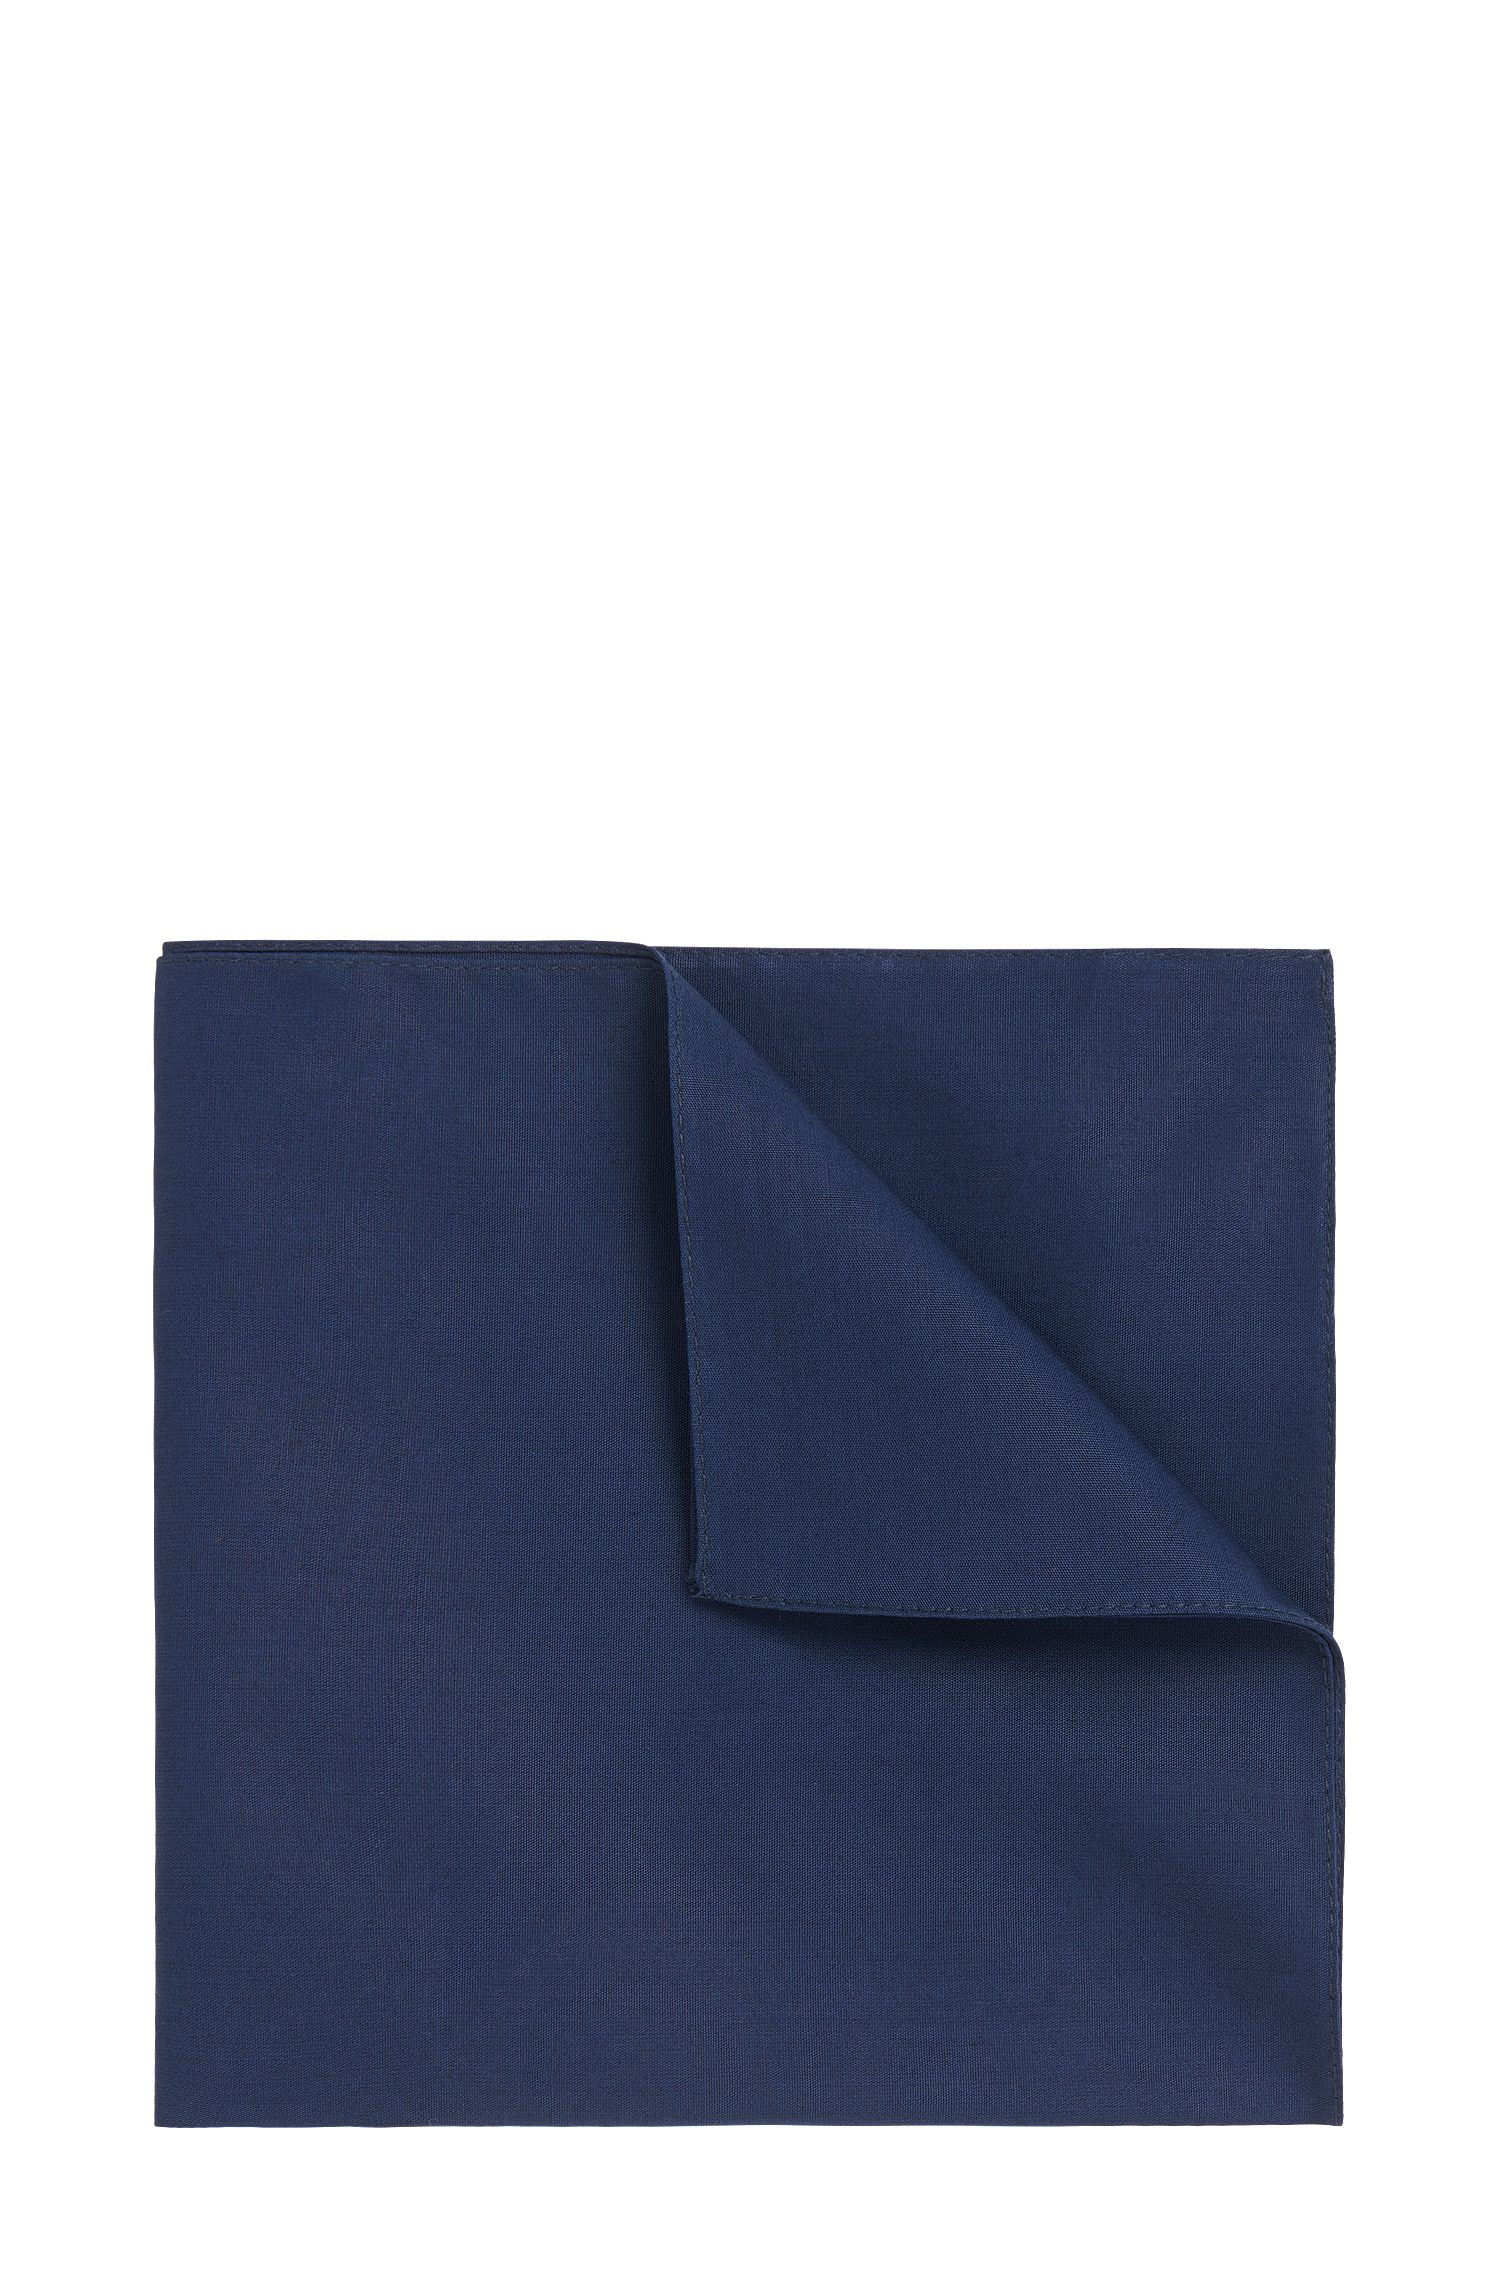 Jacquard pocket square in pure cotton